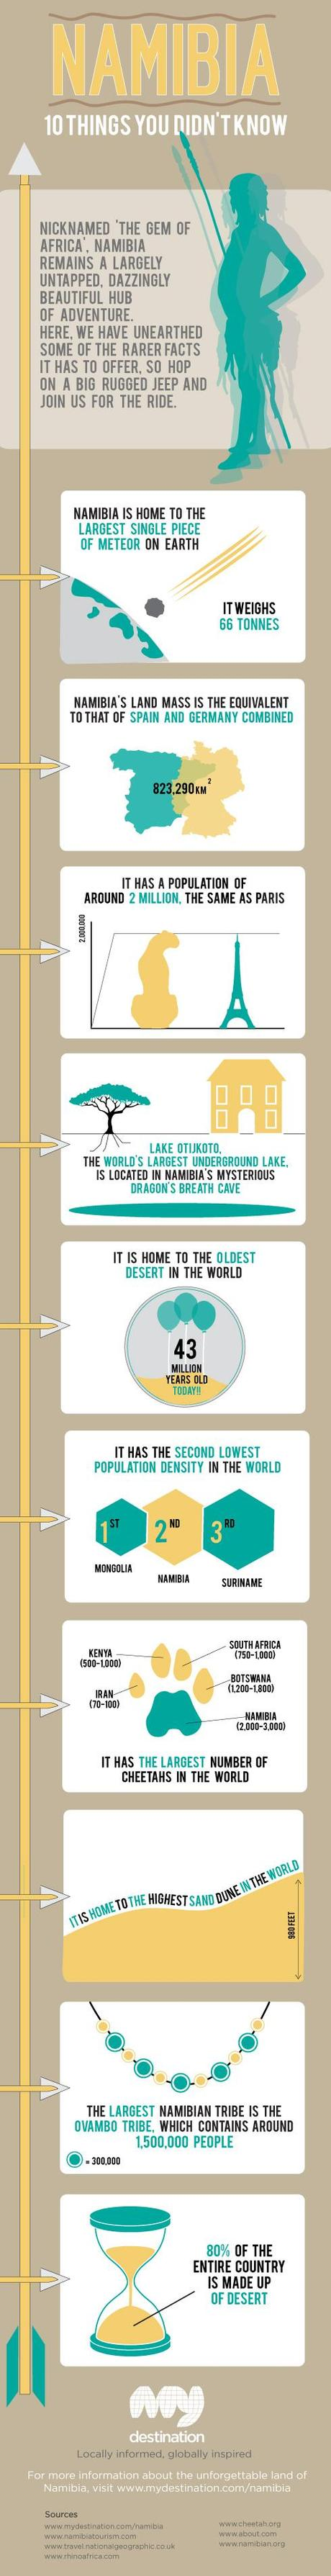 Interesting Facts About Namibia Infographic